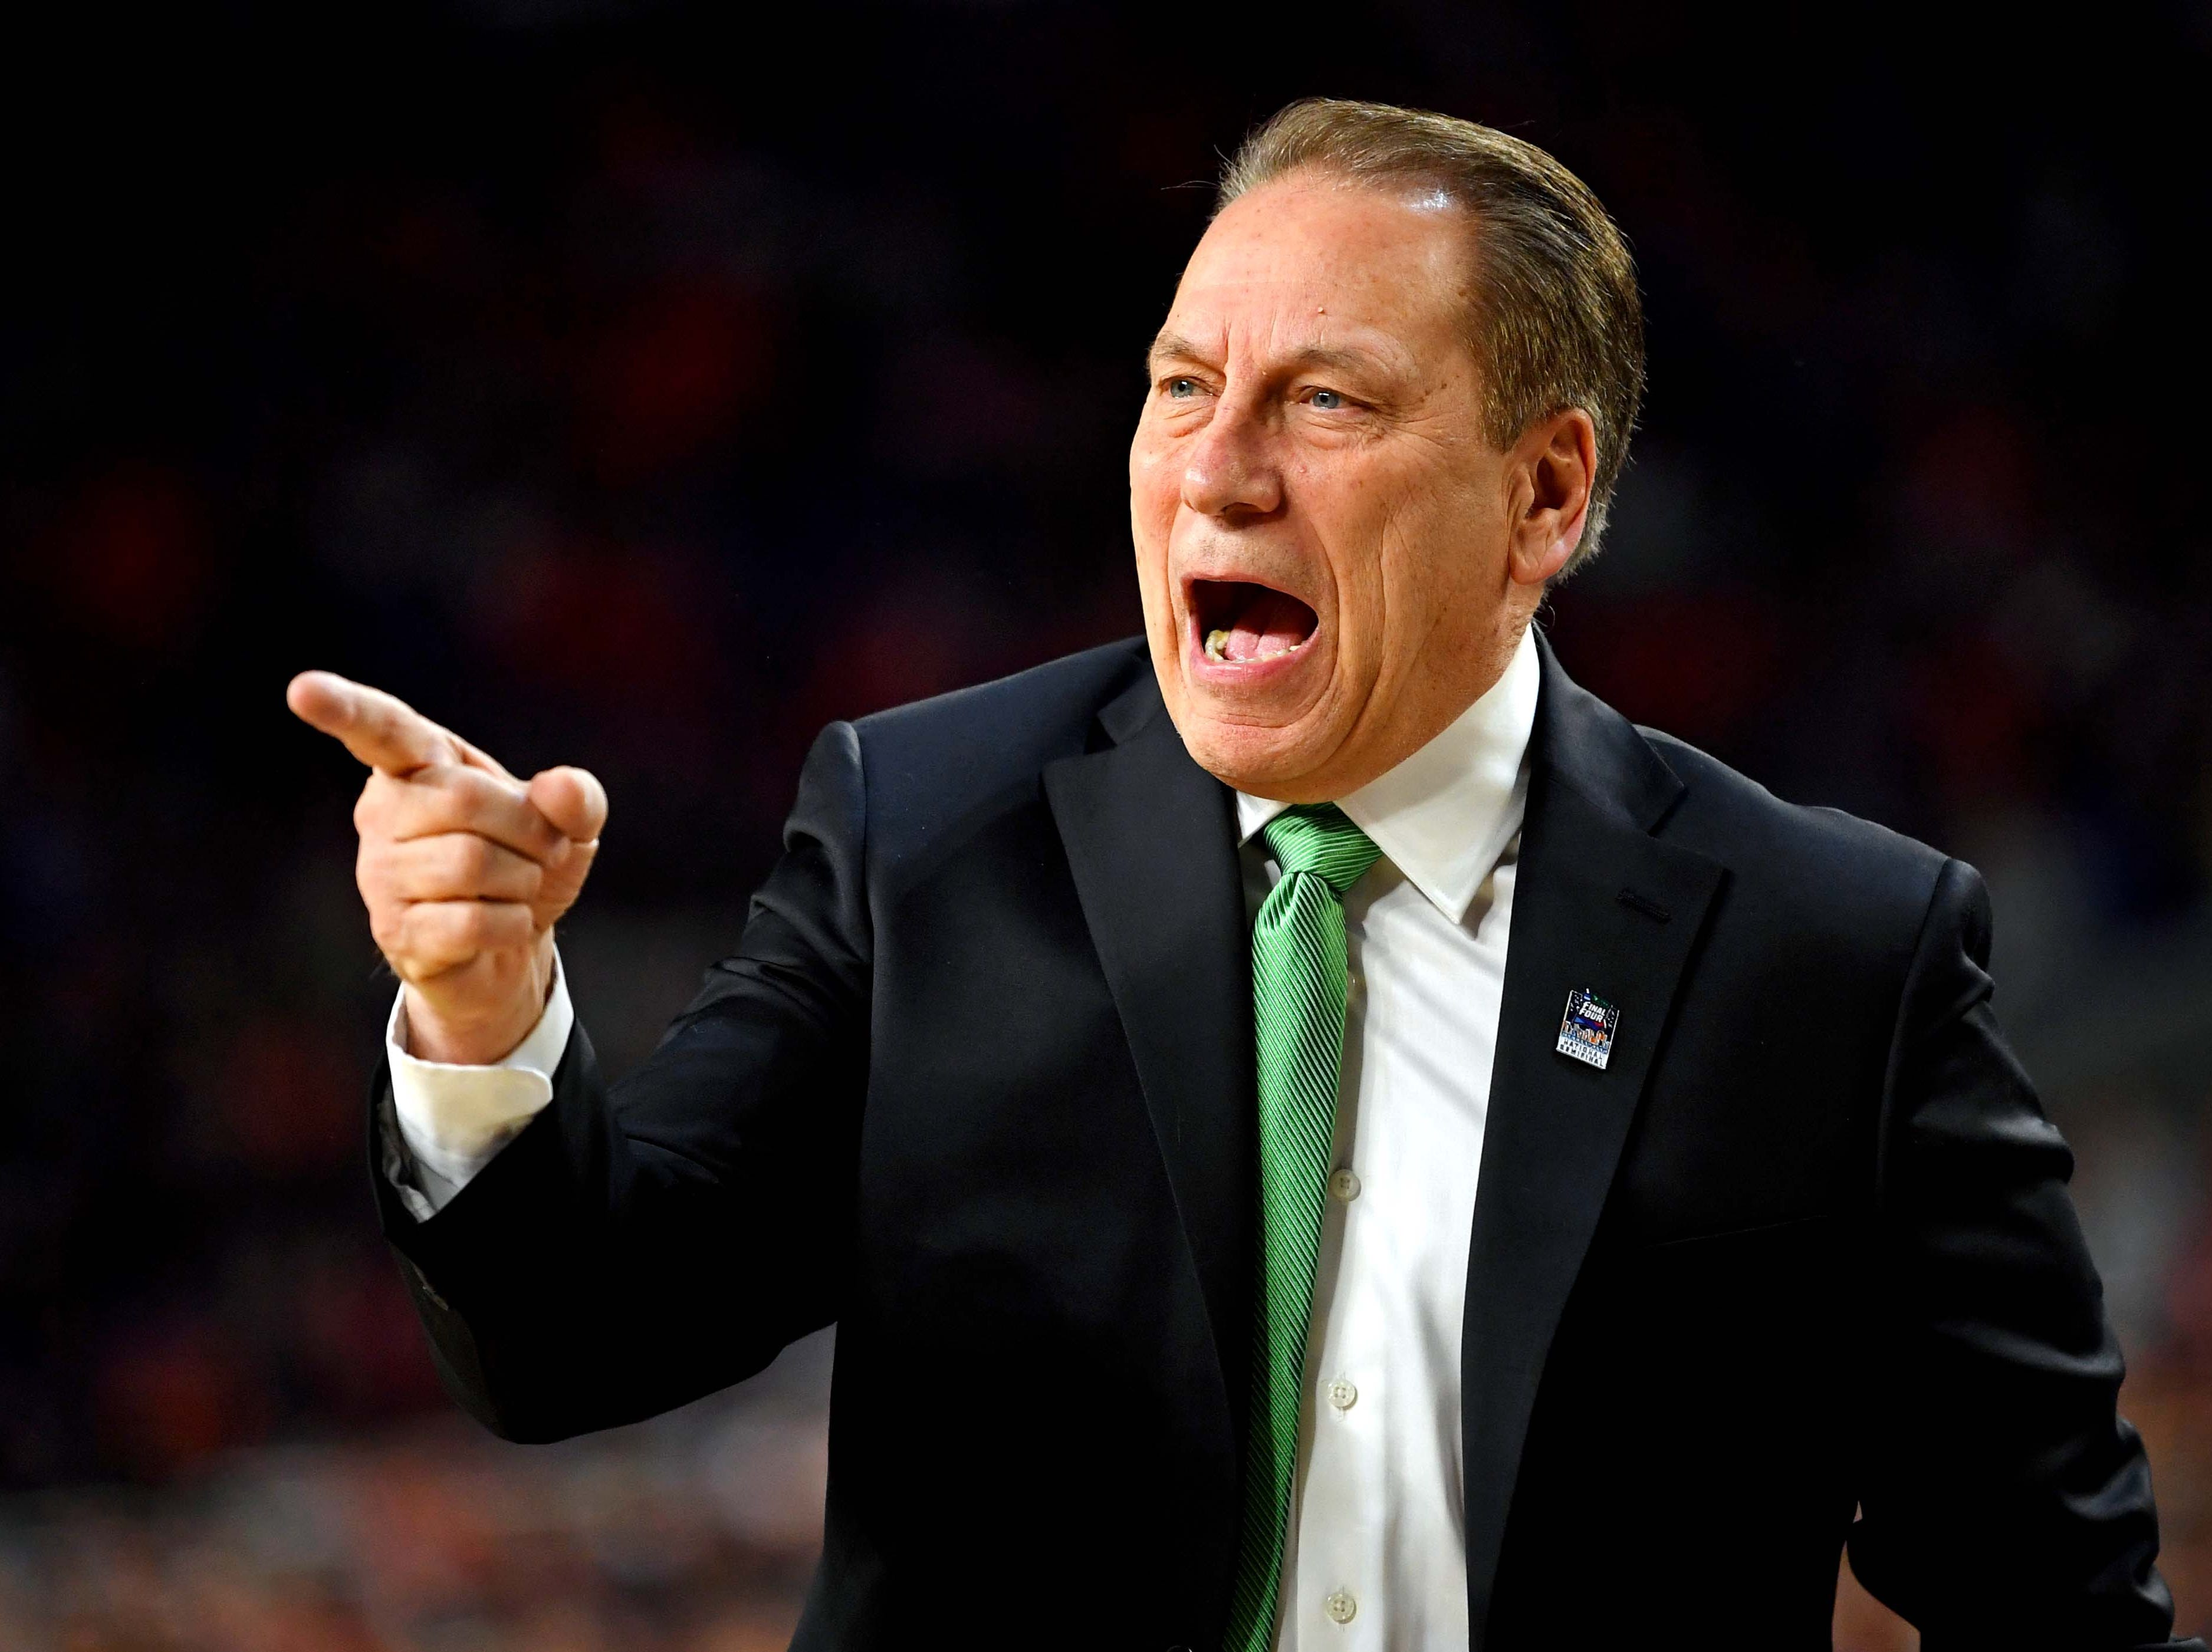 Apr 6, 2019; Minneapolis, MN, USA; Michigan State Spartans head coach Tom Izzo during the first half against the Texas Tech Red Raiders in the semifinals of the 2019 men's Final Four at US Bank Stadium. Mandatory Credit: Bob Donnan-USA TODAY Sports